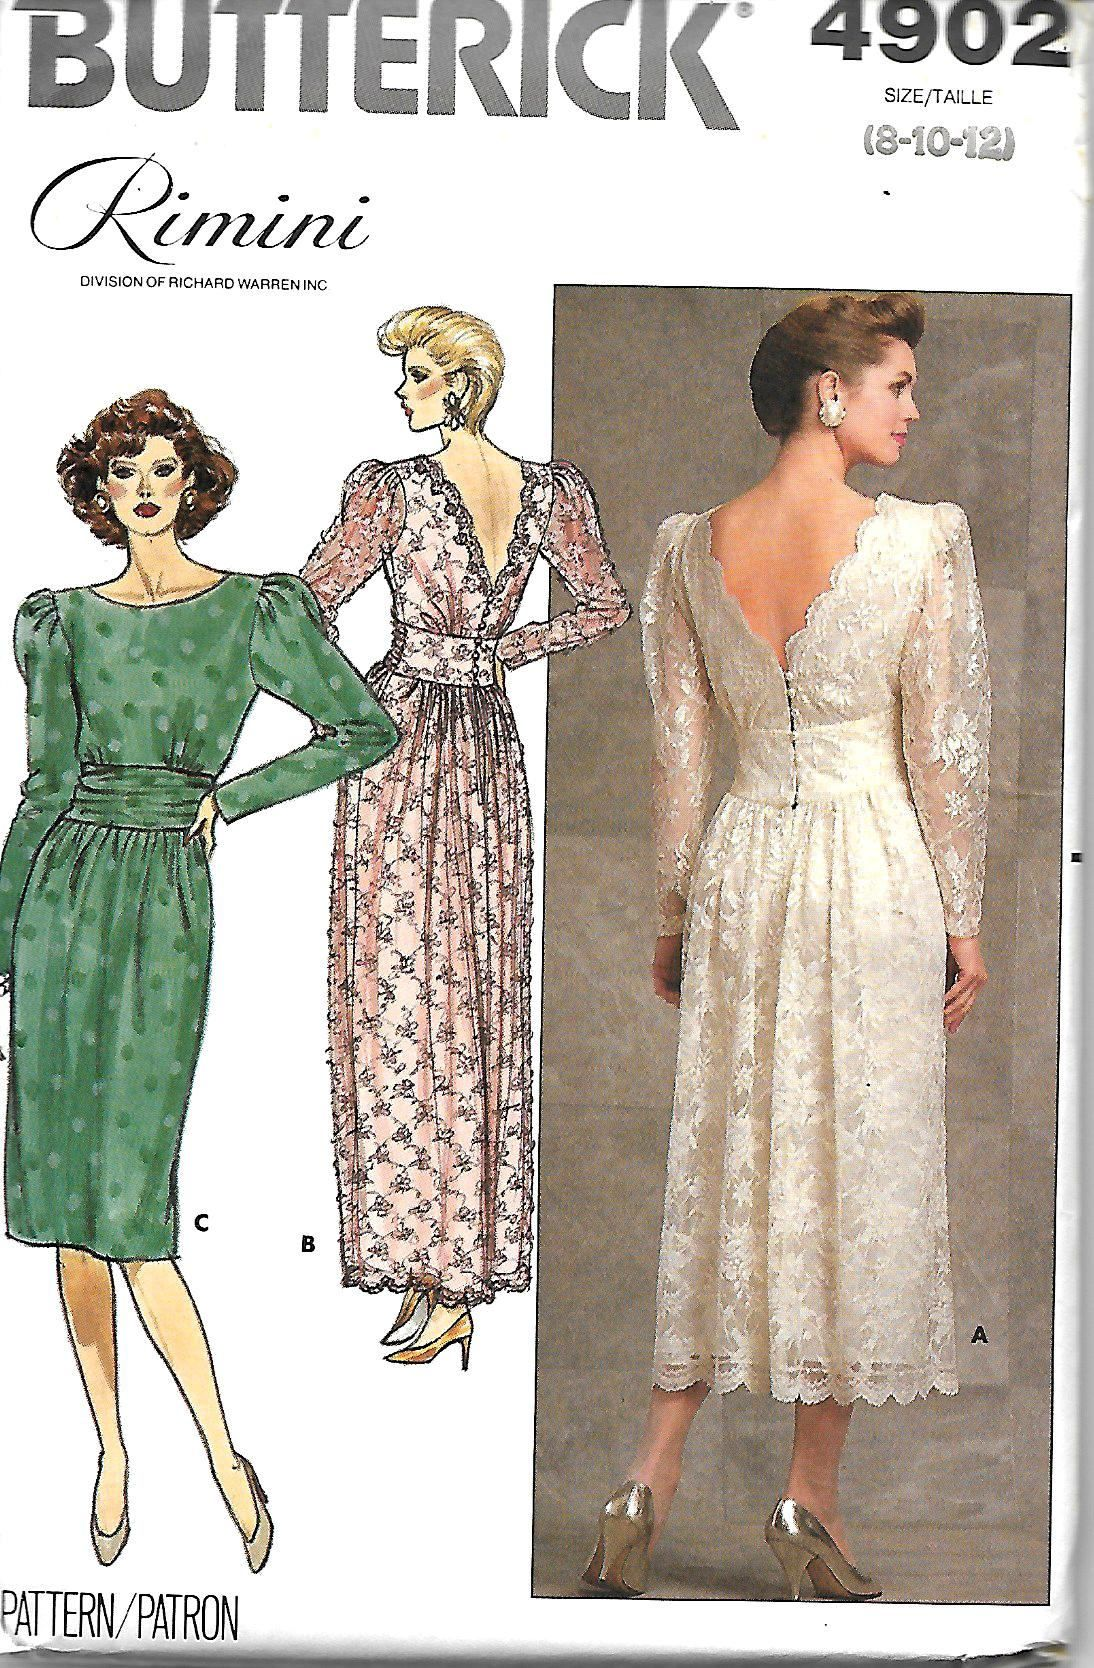 Butterick 4902 Rimini Dress Sewing Pattern Designer Pattern Lace Overlay Evening Dress 8 Bridal Sewing Patterns Formal Dress Patterns Vintage Formal Dresses